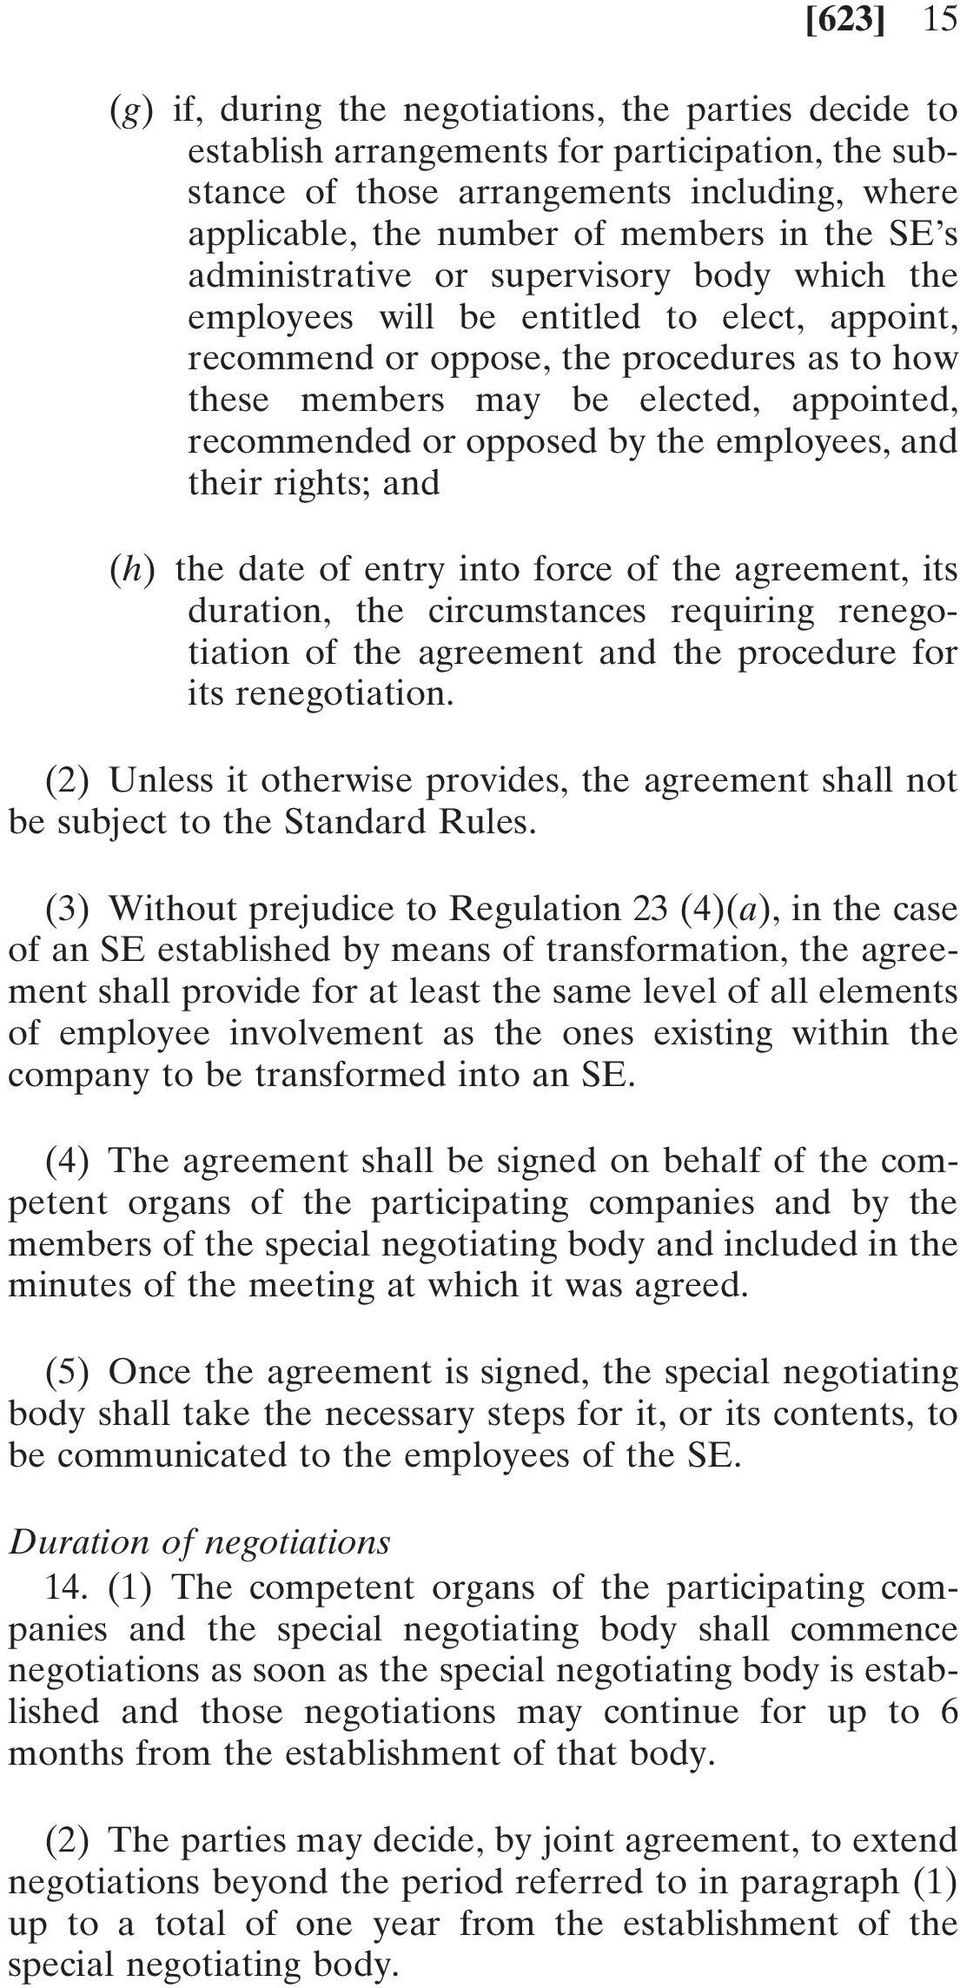 opposed by the employees, and their rights; and (h) the date of entry into force of the agreement, its duration, the circumstances requiring renegotiation of the agreement and the procedure for its